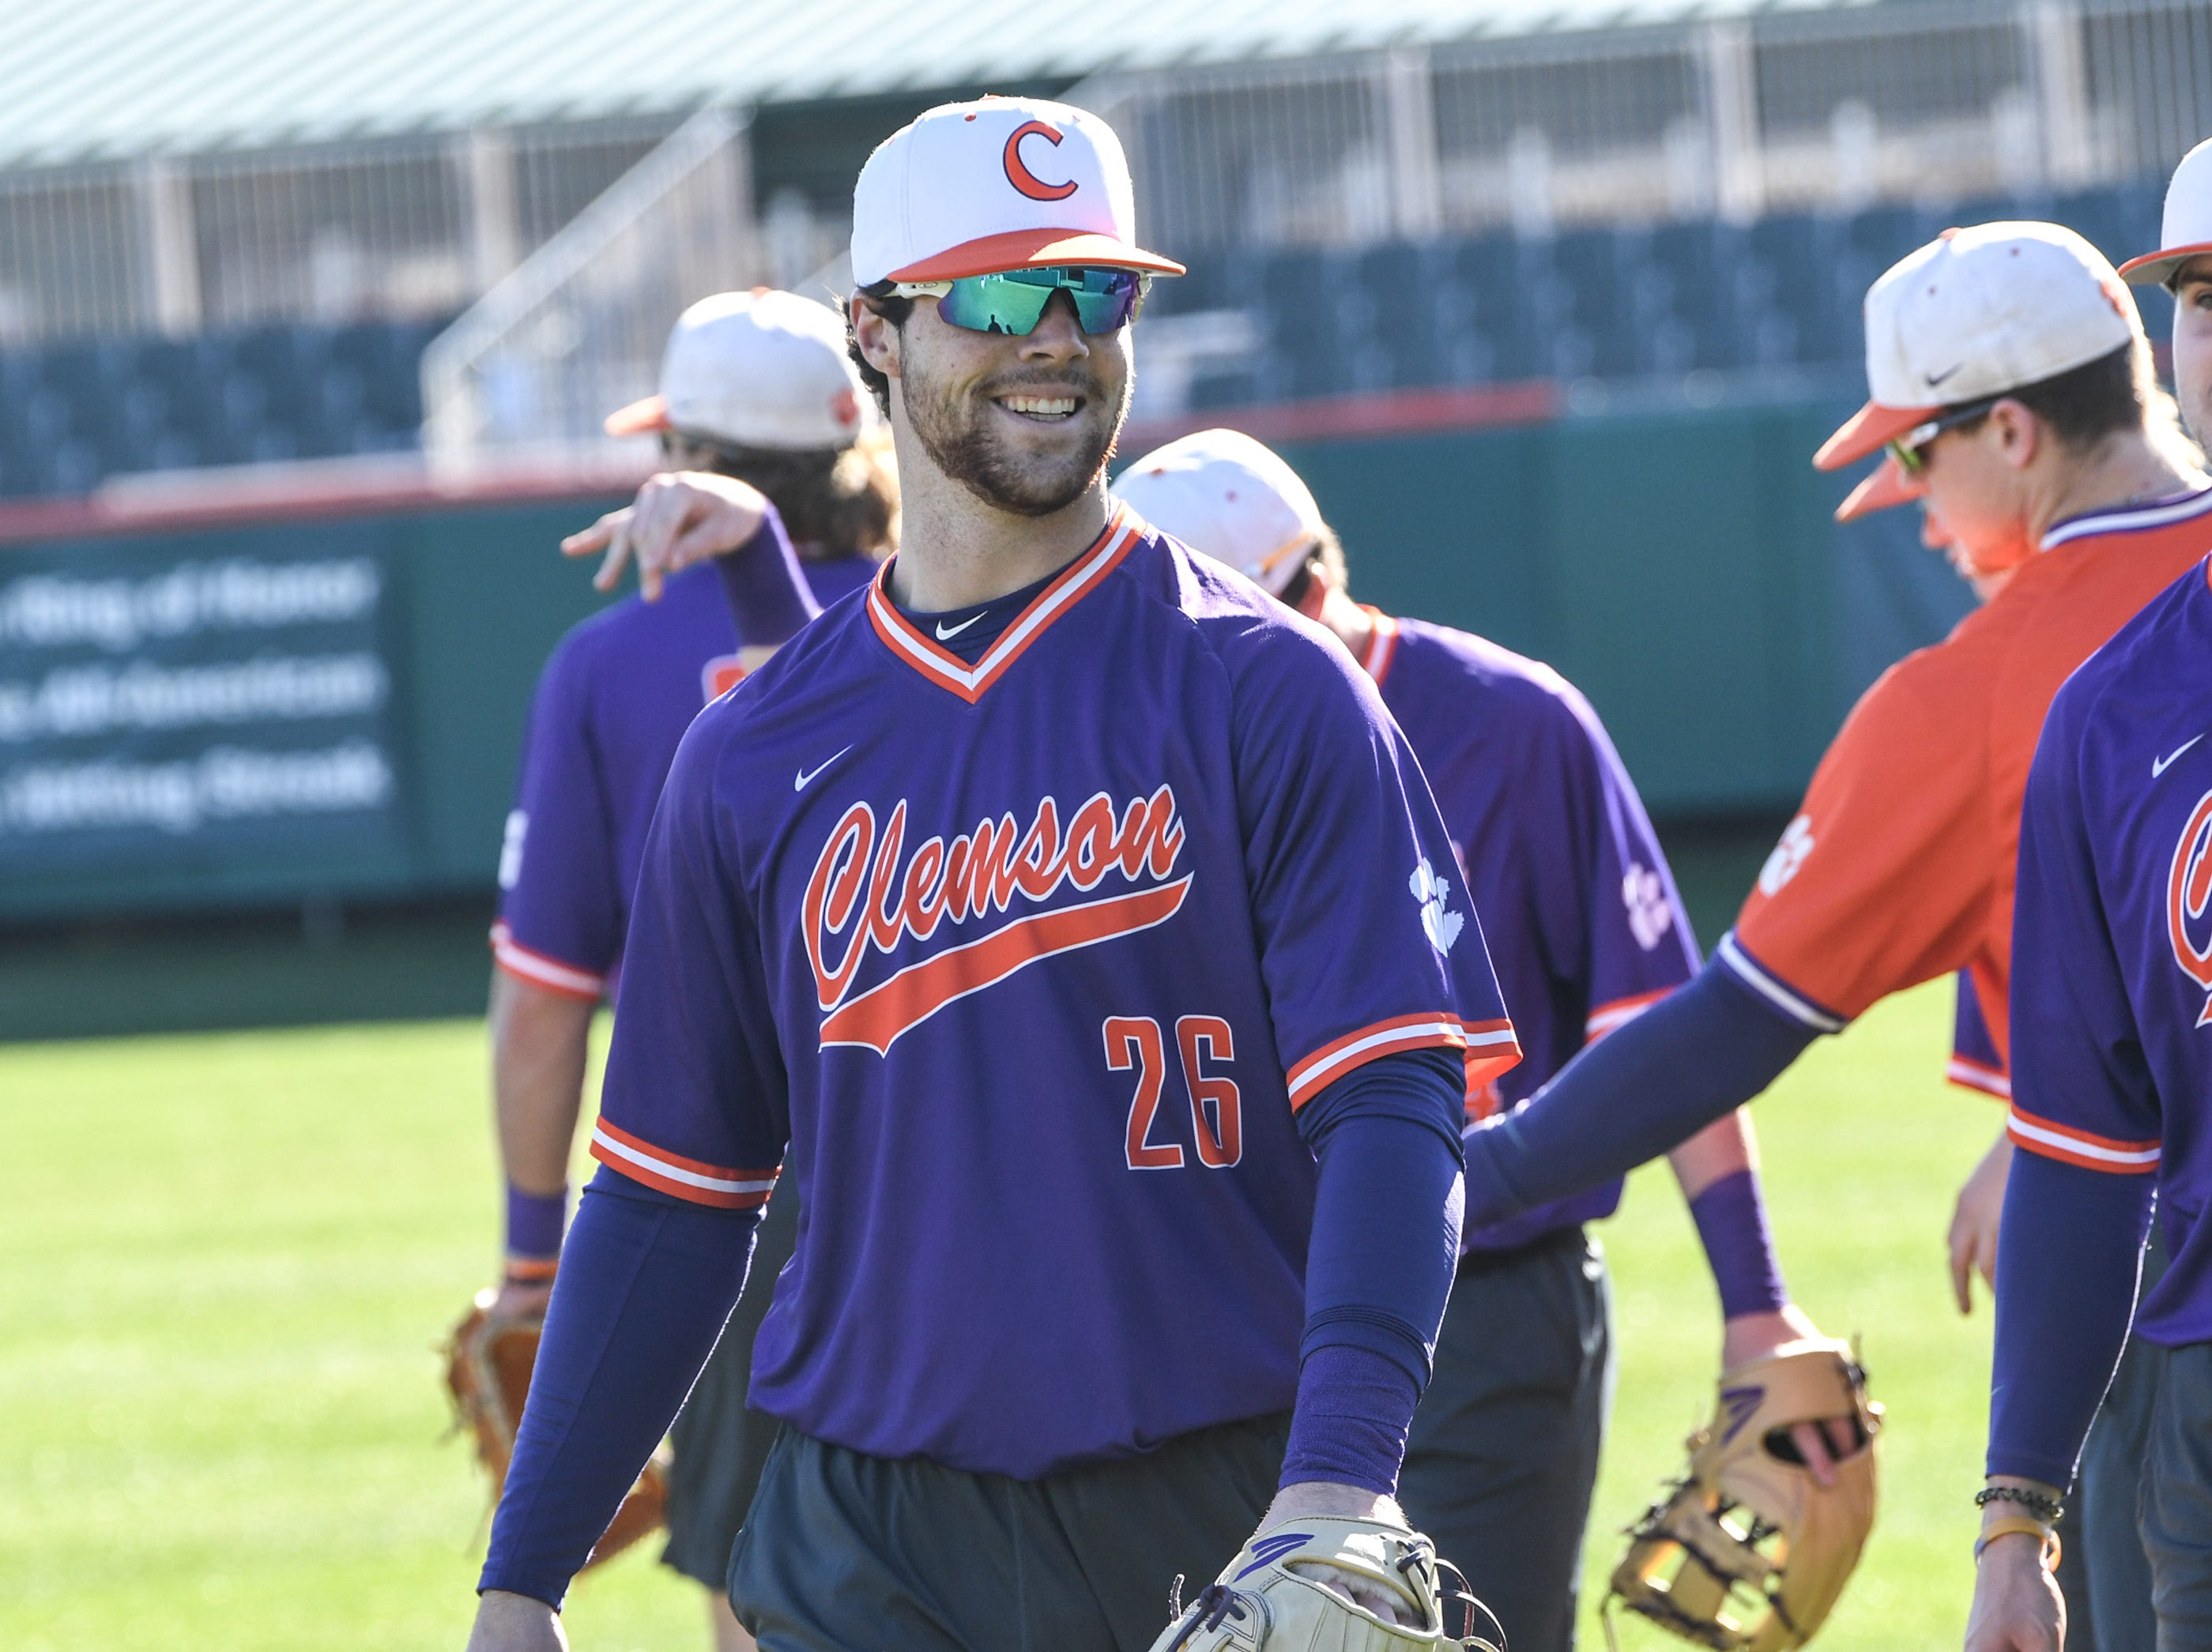 Clemson catcher Matt Cooper (26) warms up together during practice at Doug Kingsmore Stadium in Clemson Friday.